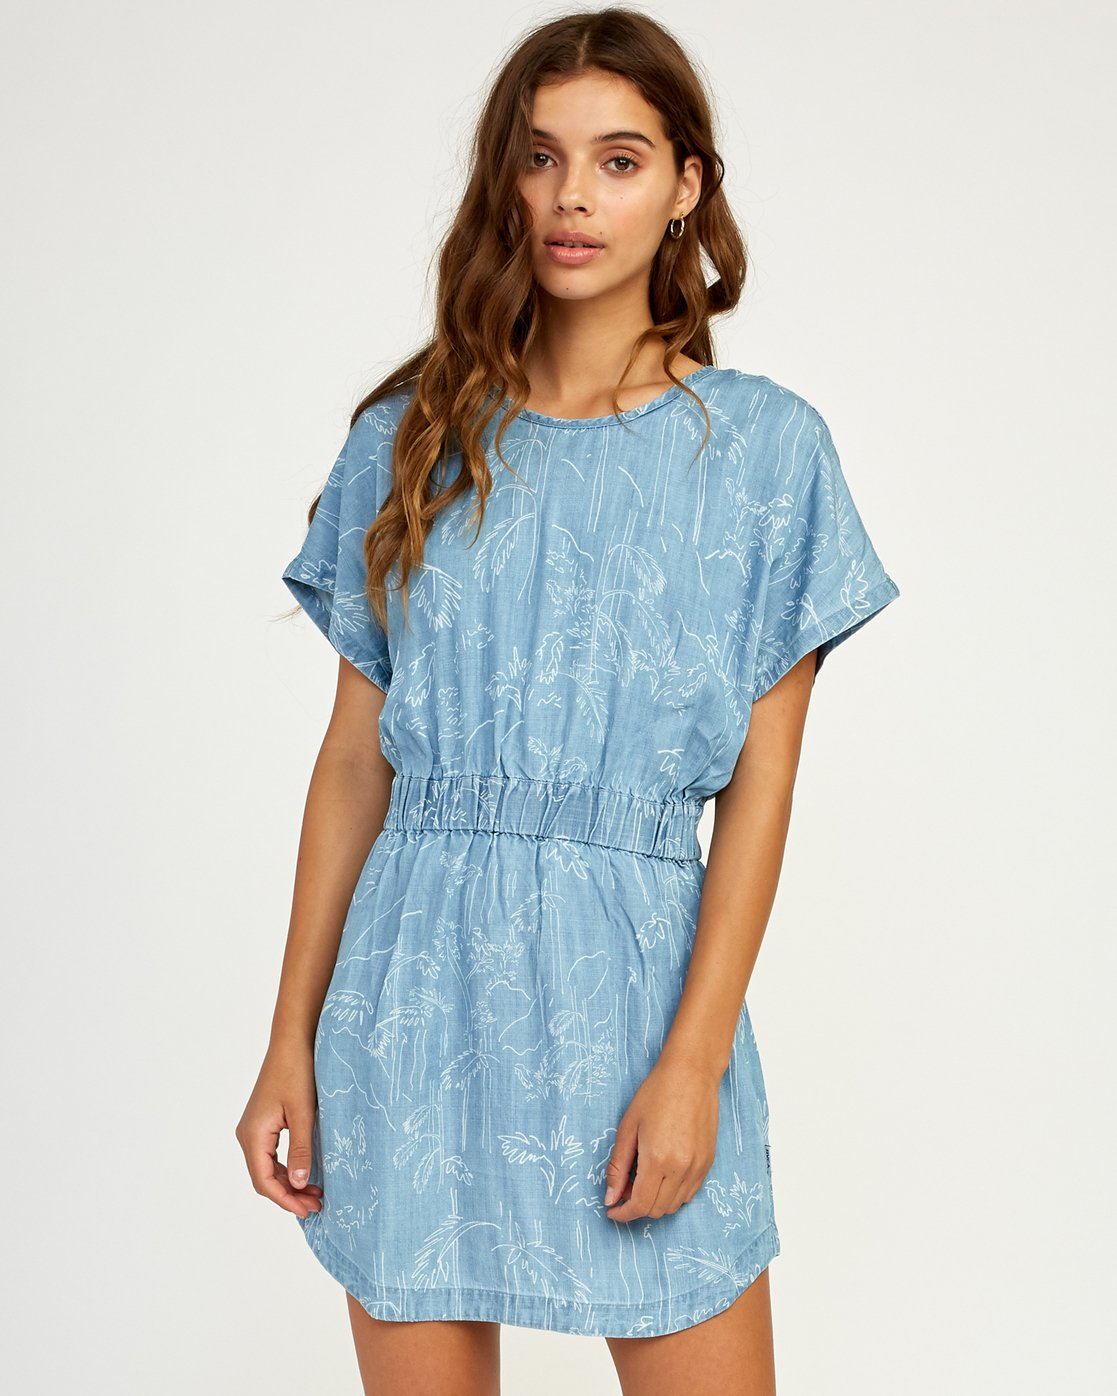 0 Nothing Left Printed Chambray Dress Blue WD17TRNL RVCA